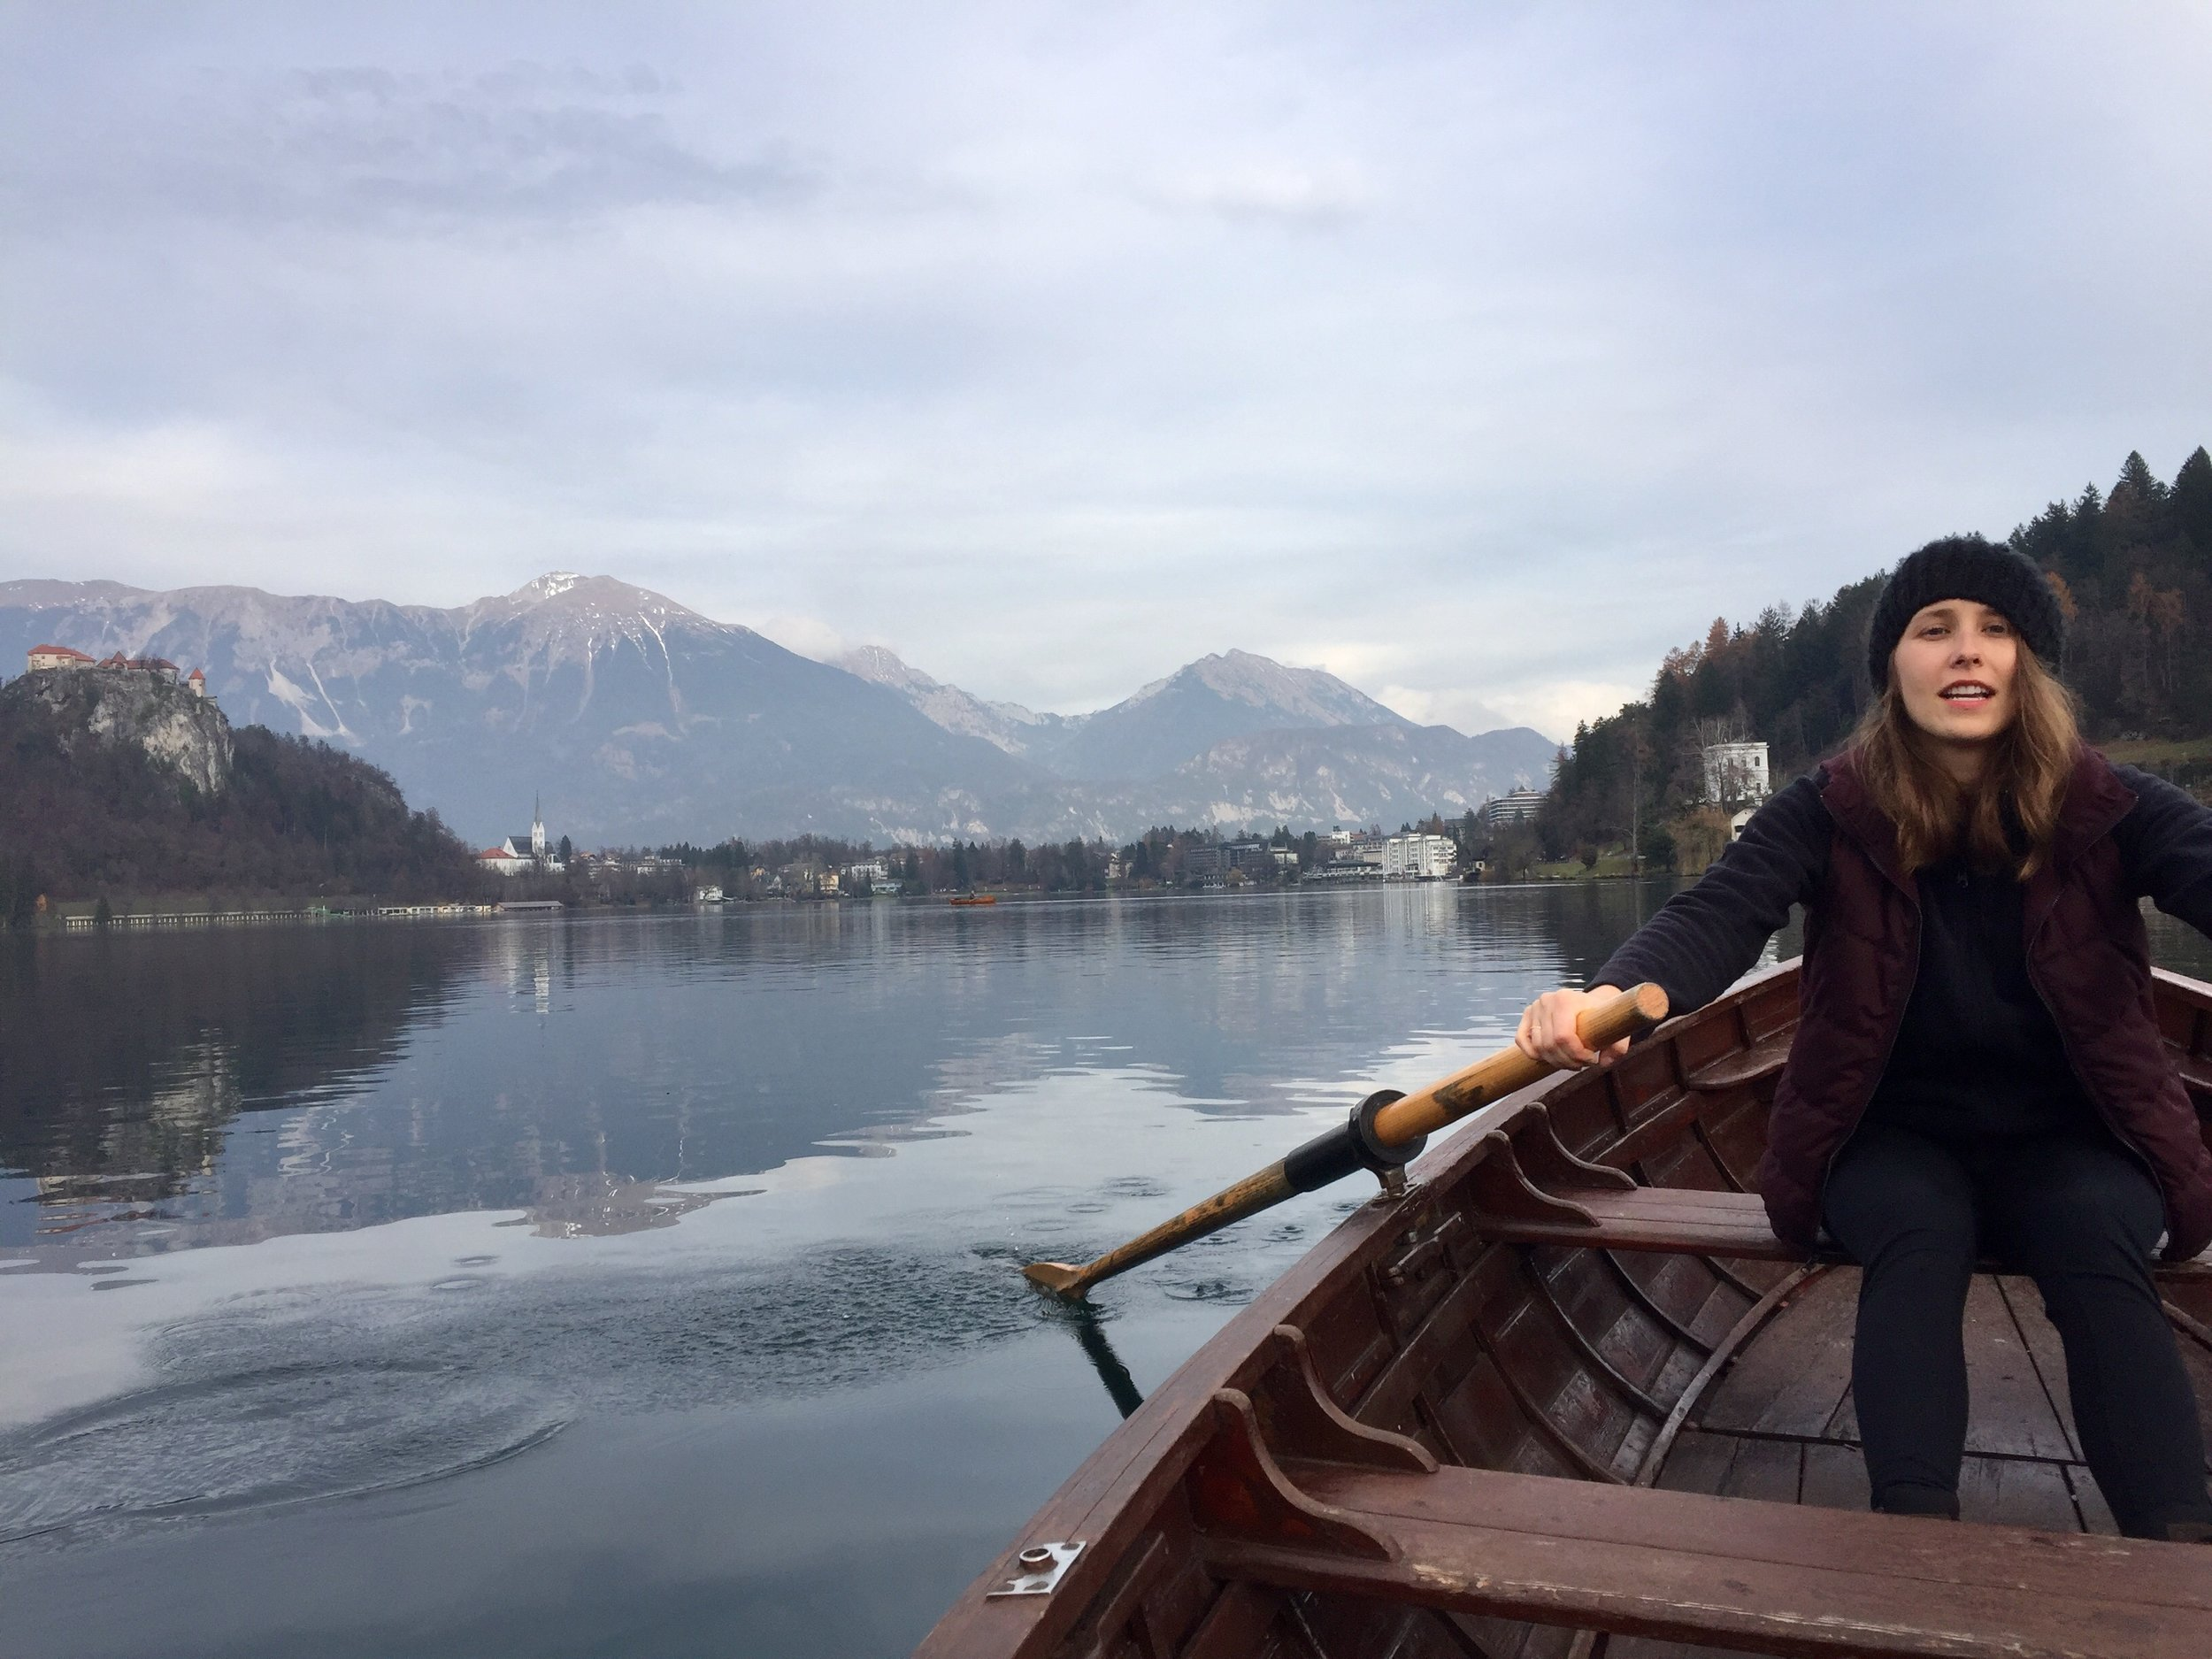 Attempting to row on Lake Bled; views of the Alps in the distance